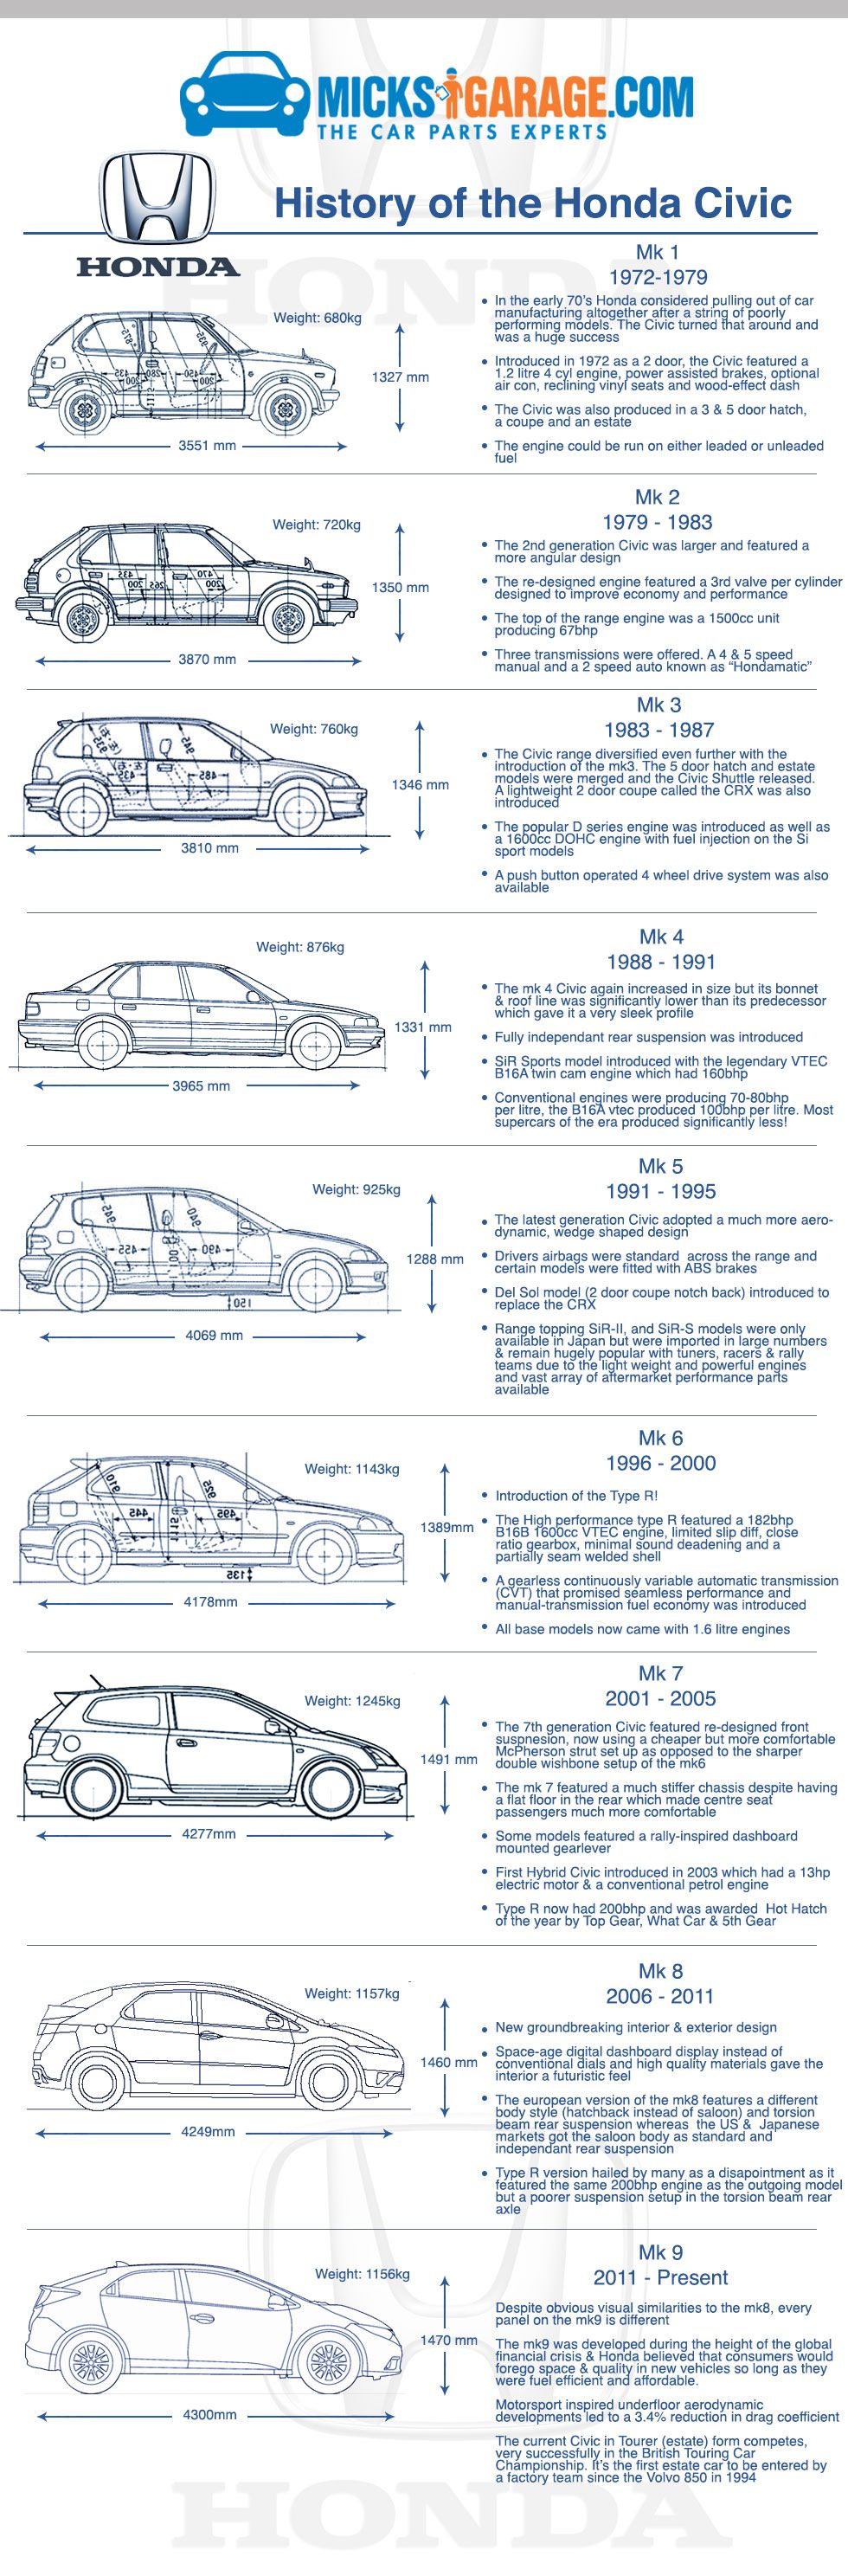 History Of The Honda Civic One Best Loved And Selling Cars In World By Team At Micksgarage